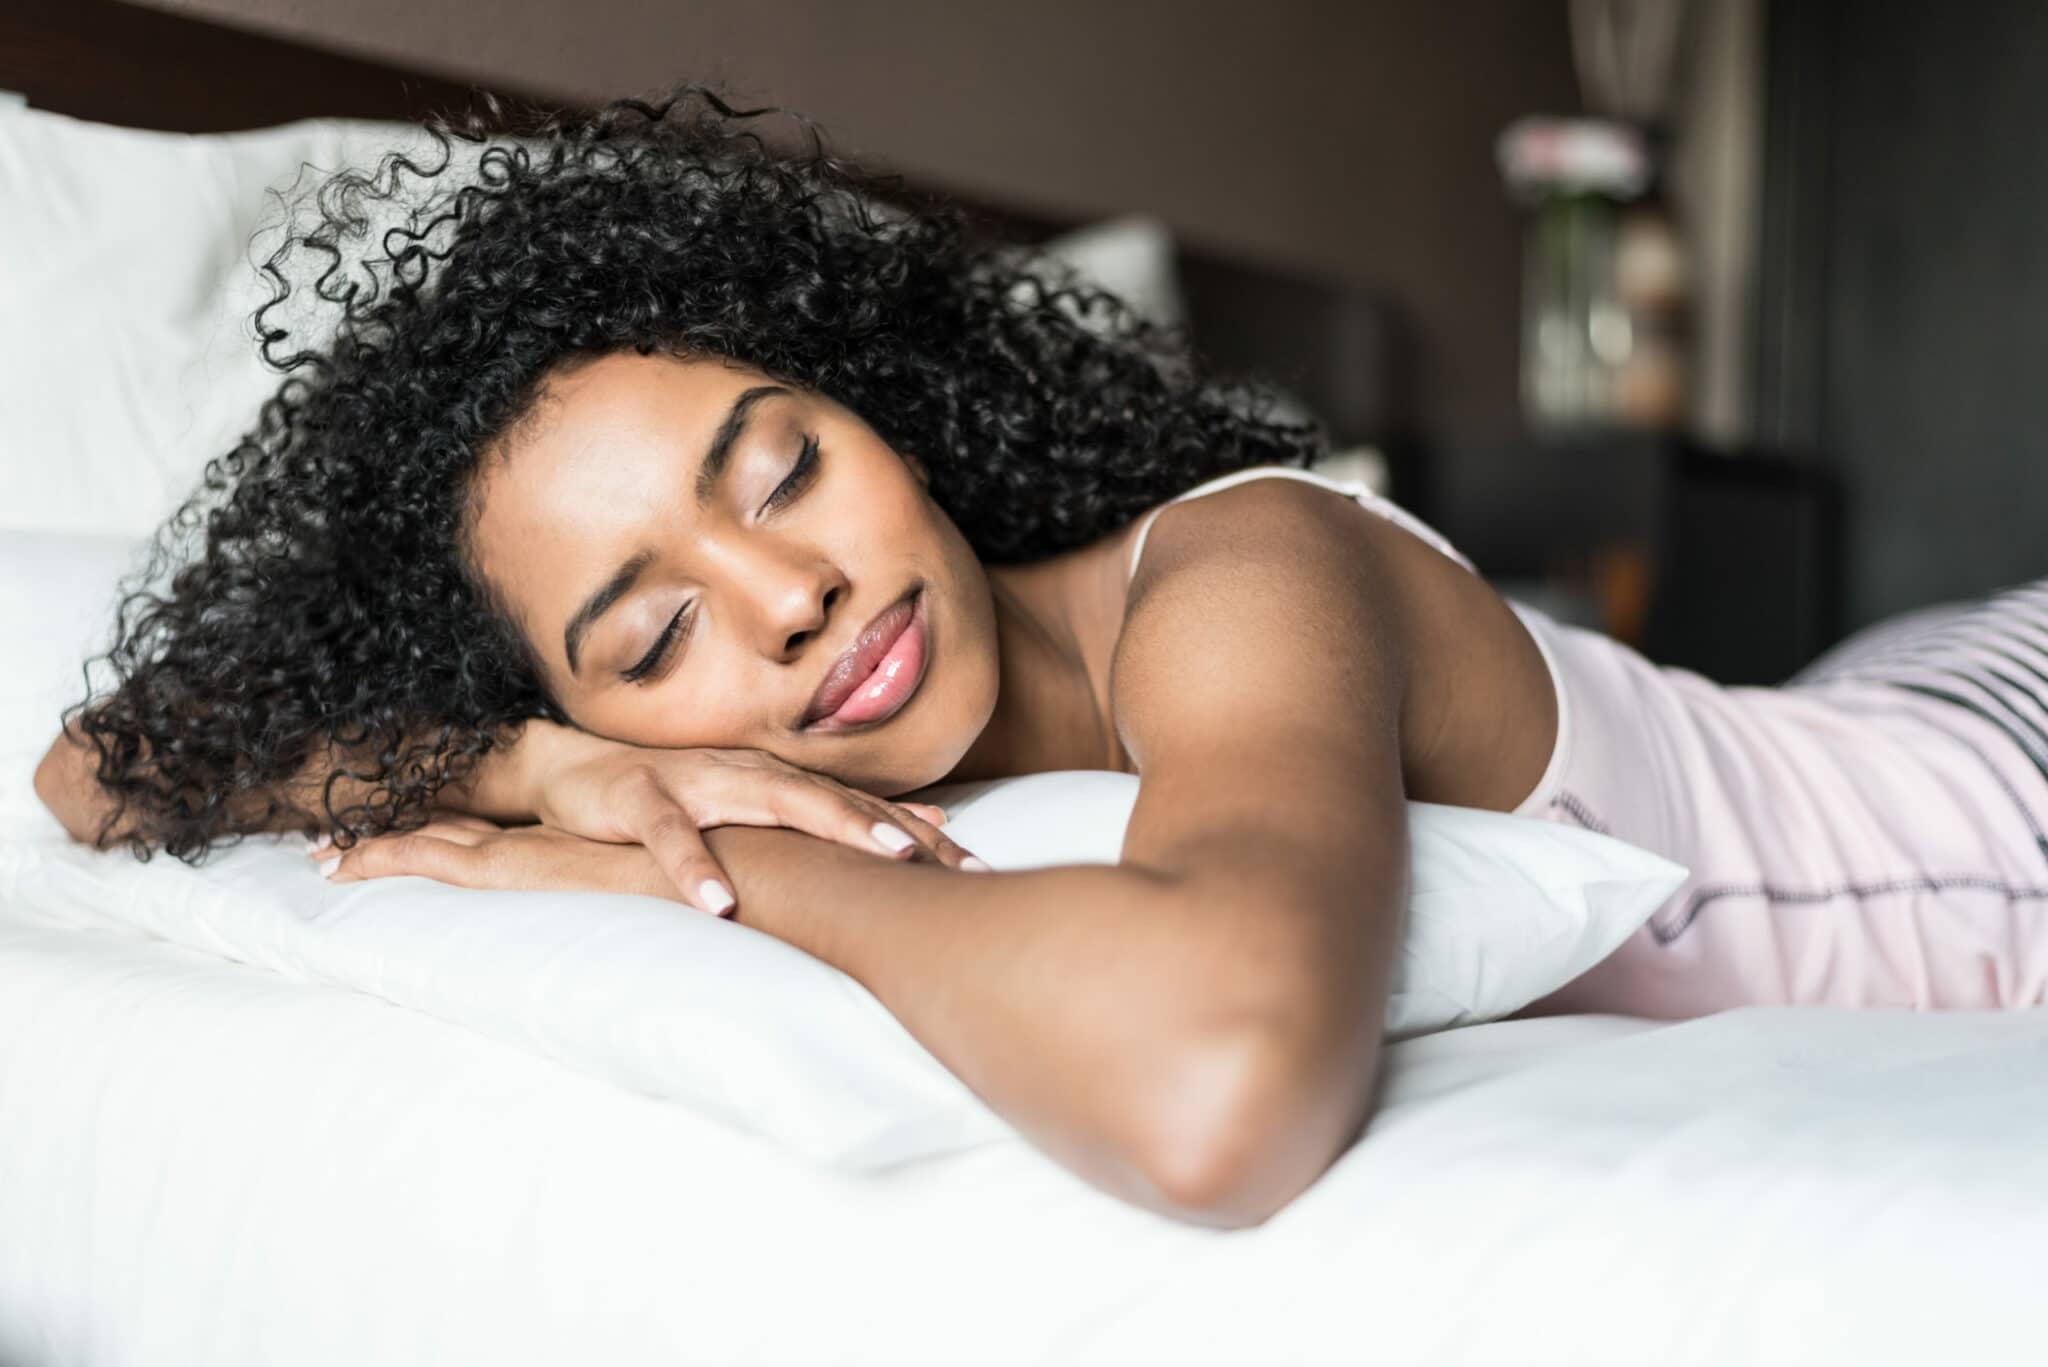 A woman sleeping in bed with curly hair.